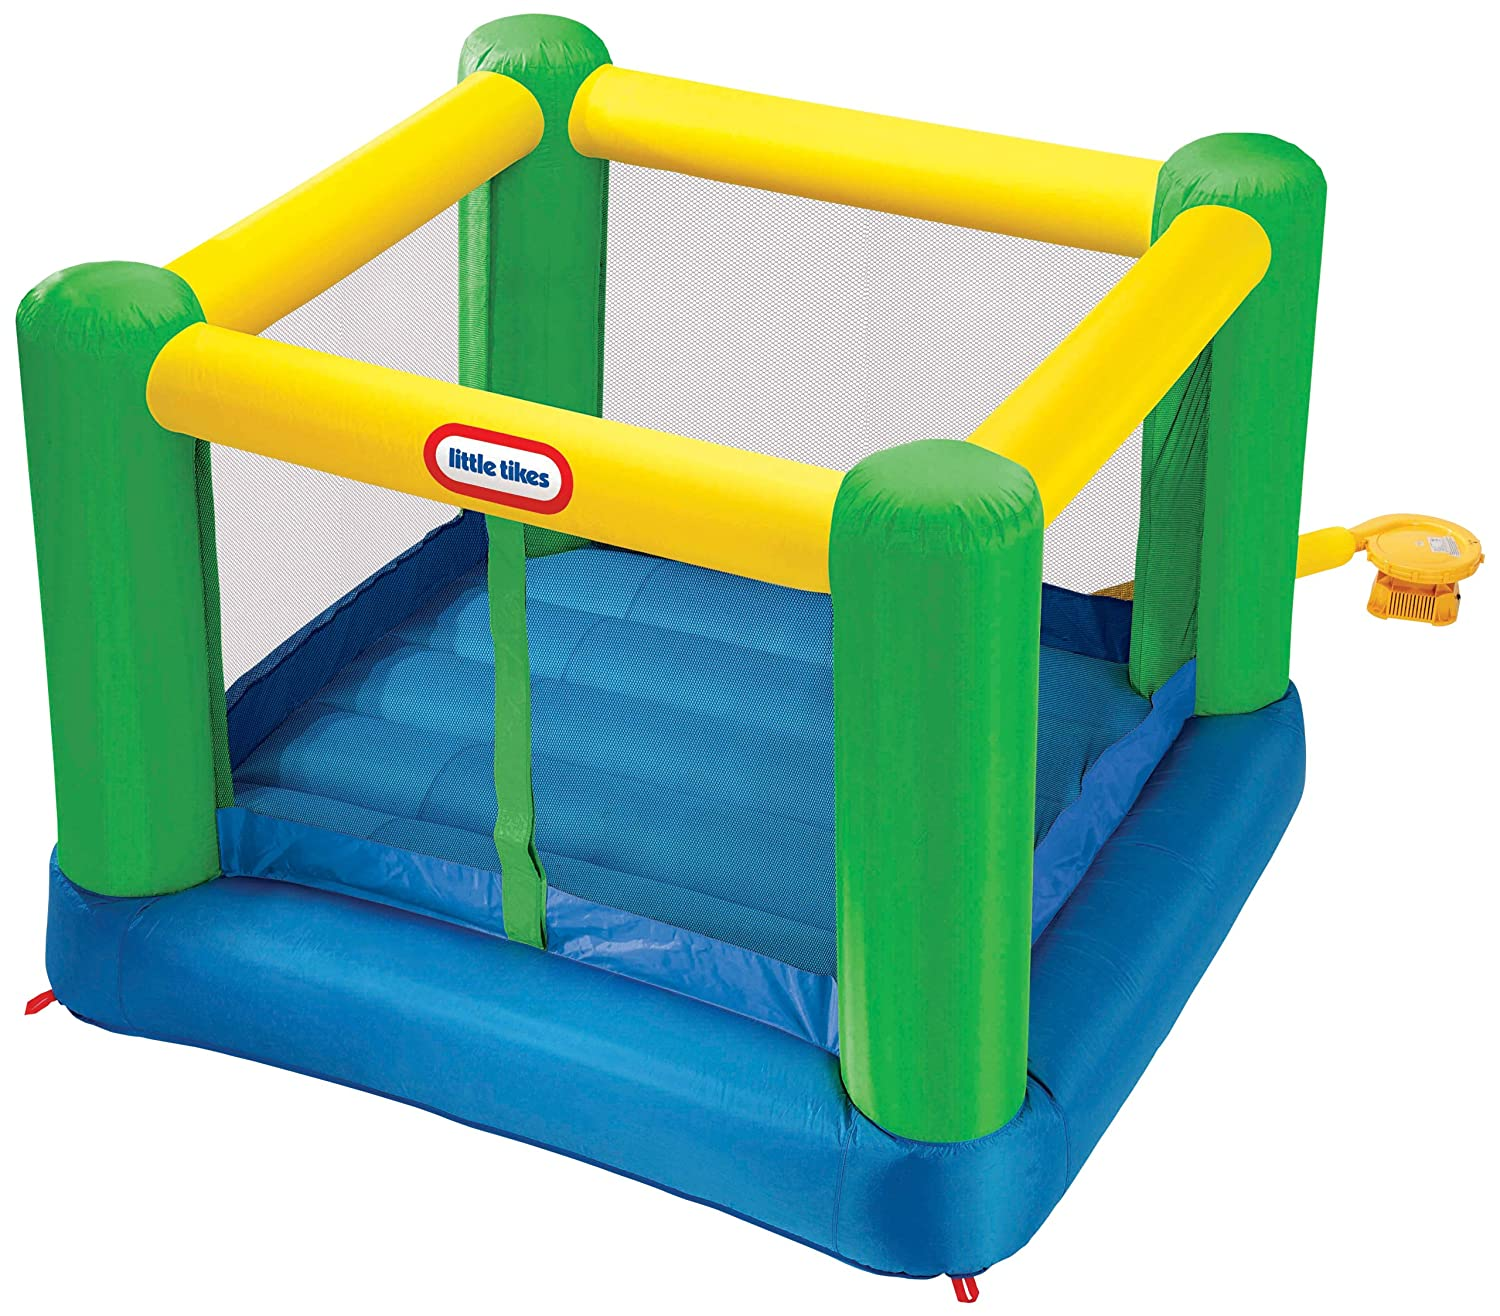 The Top 50 Safest Bouncy Houses & Tips for Safe Use